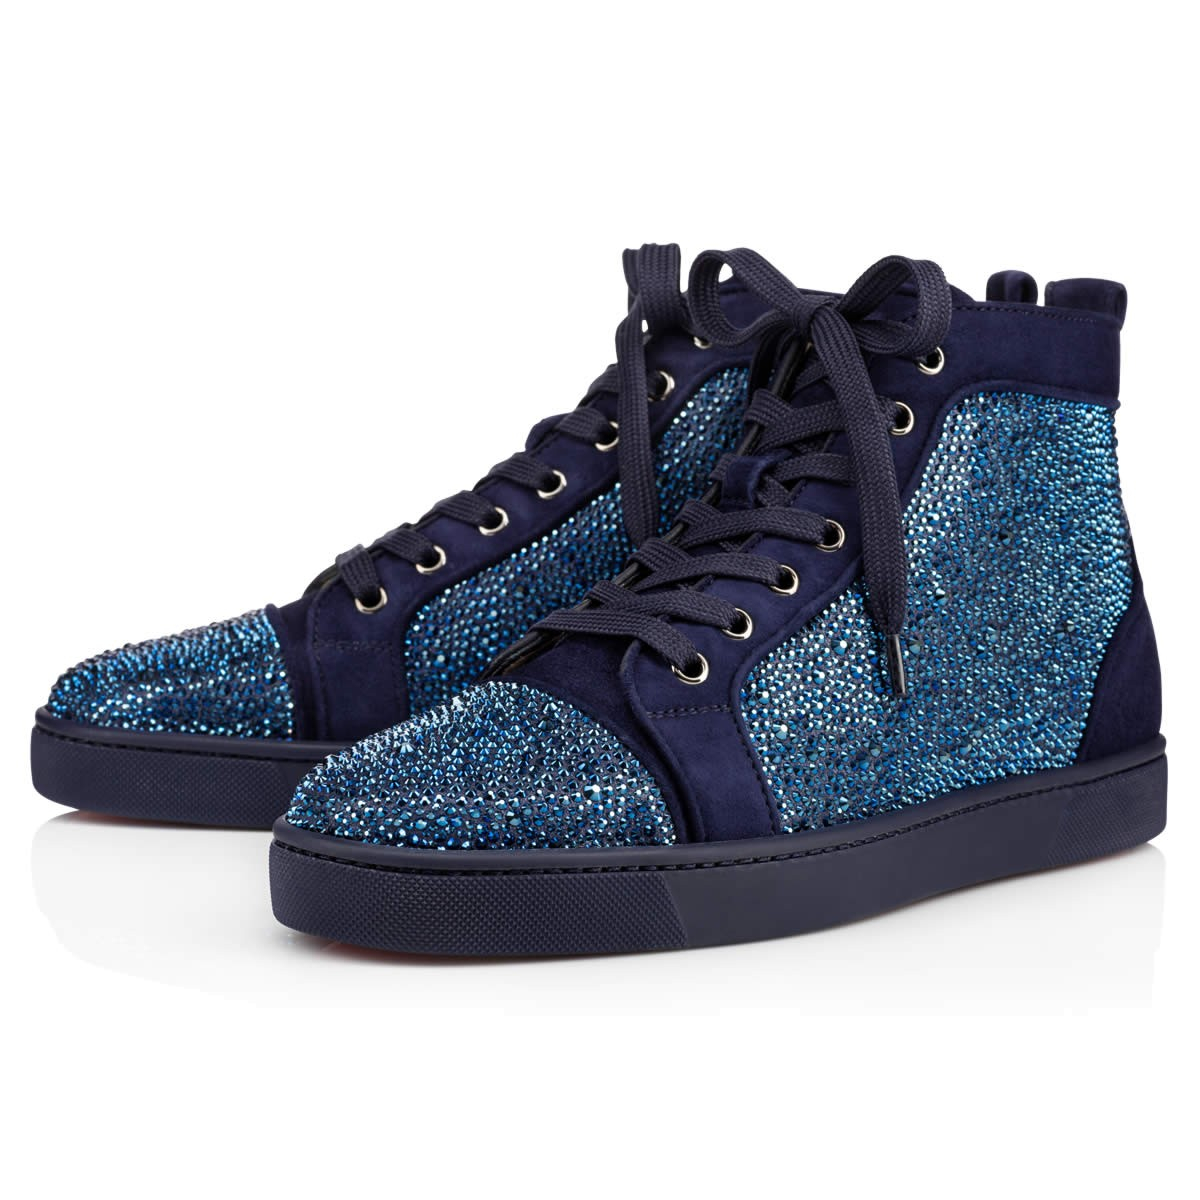 Louboutin Men Inspired Shoes